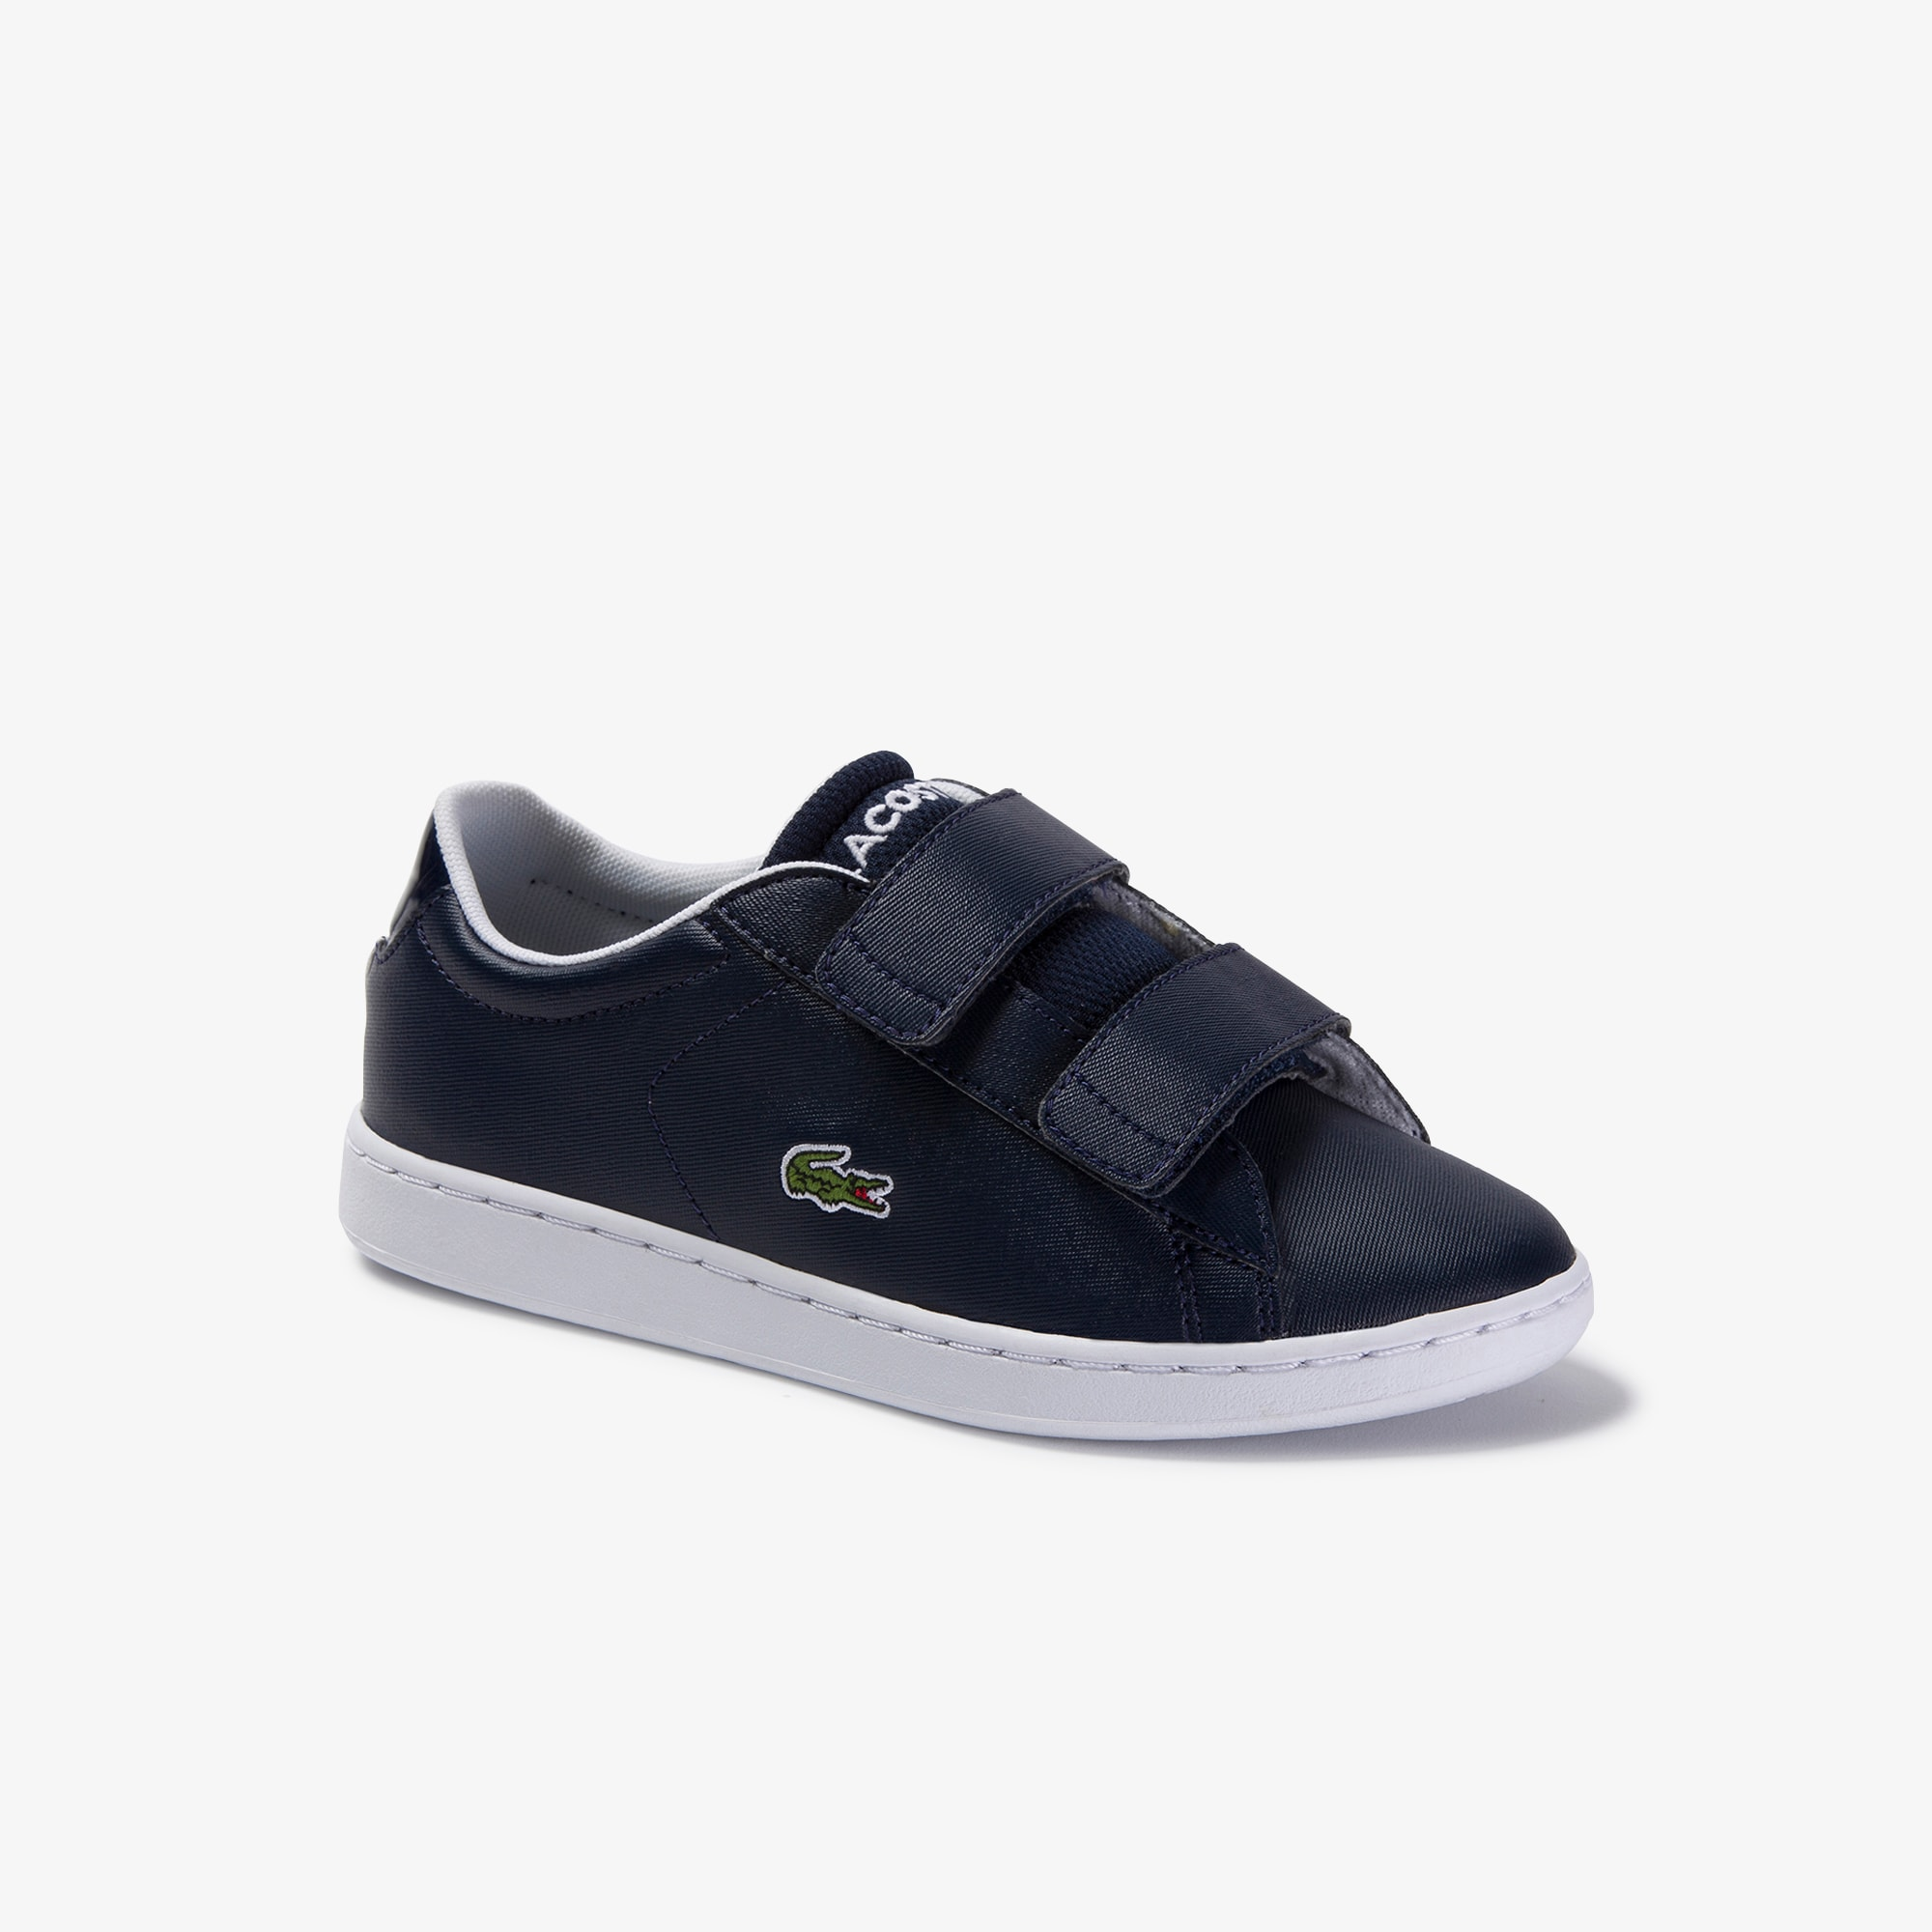 spitz lacoste for kids - 50% OFF